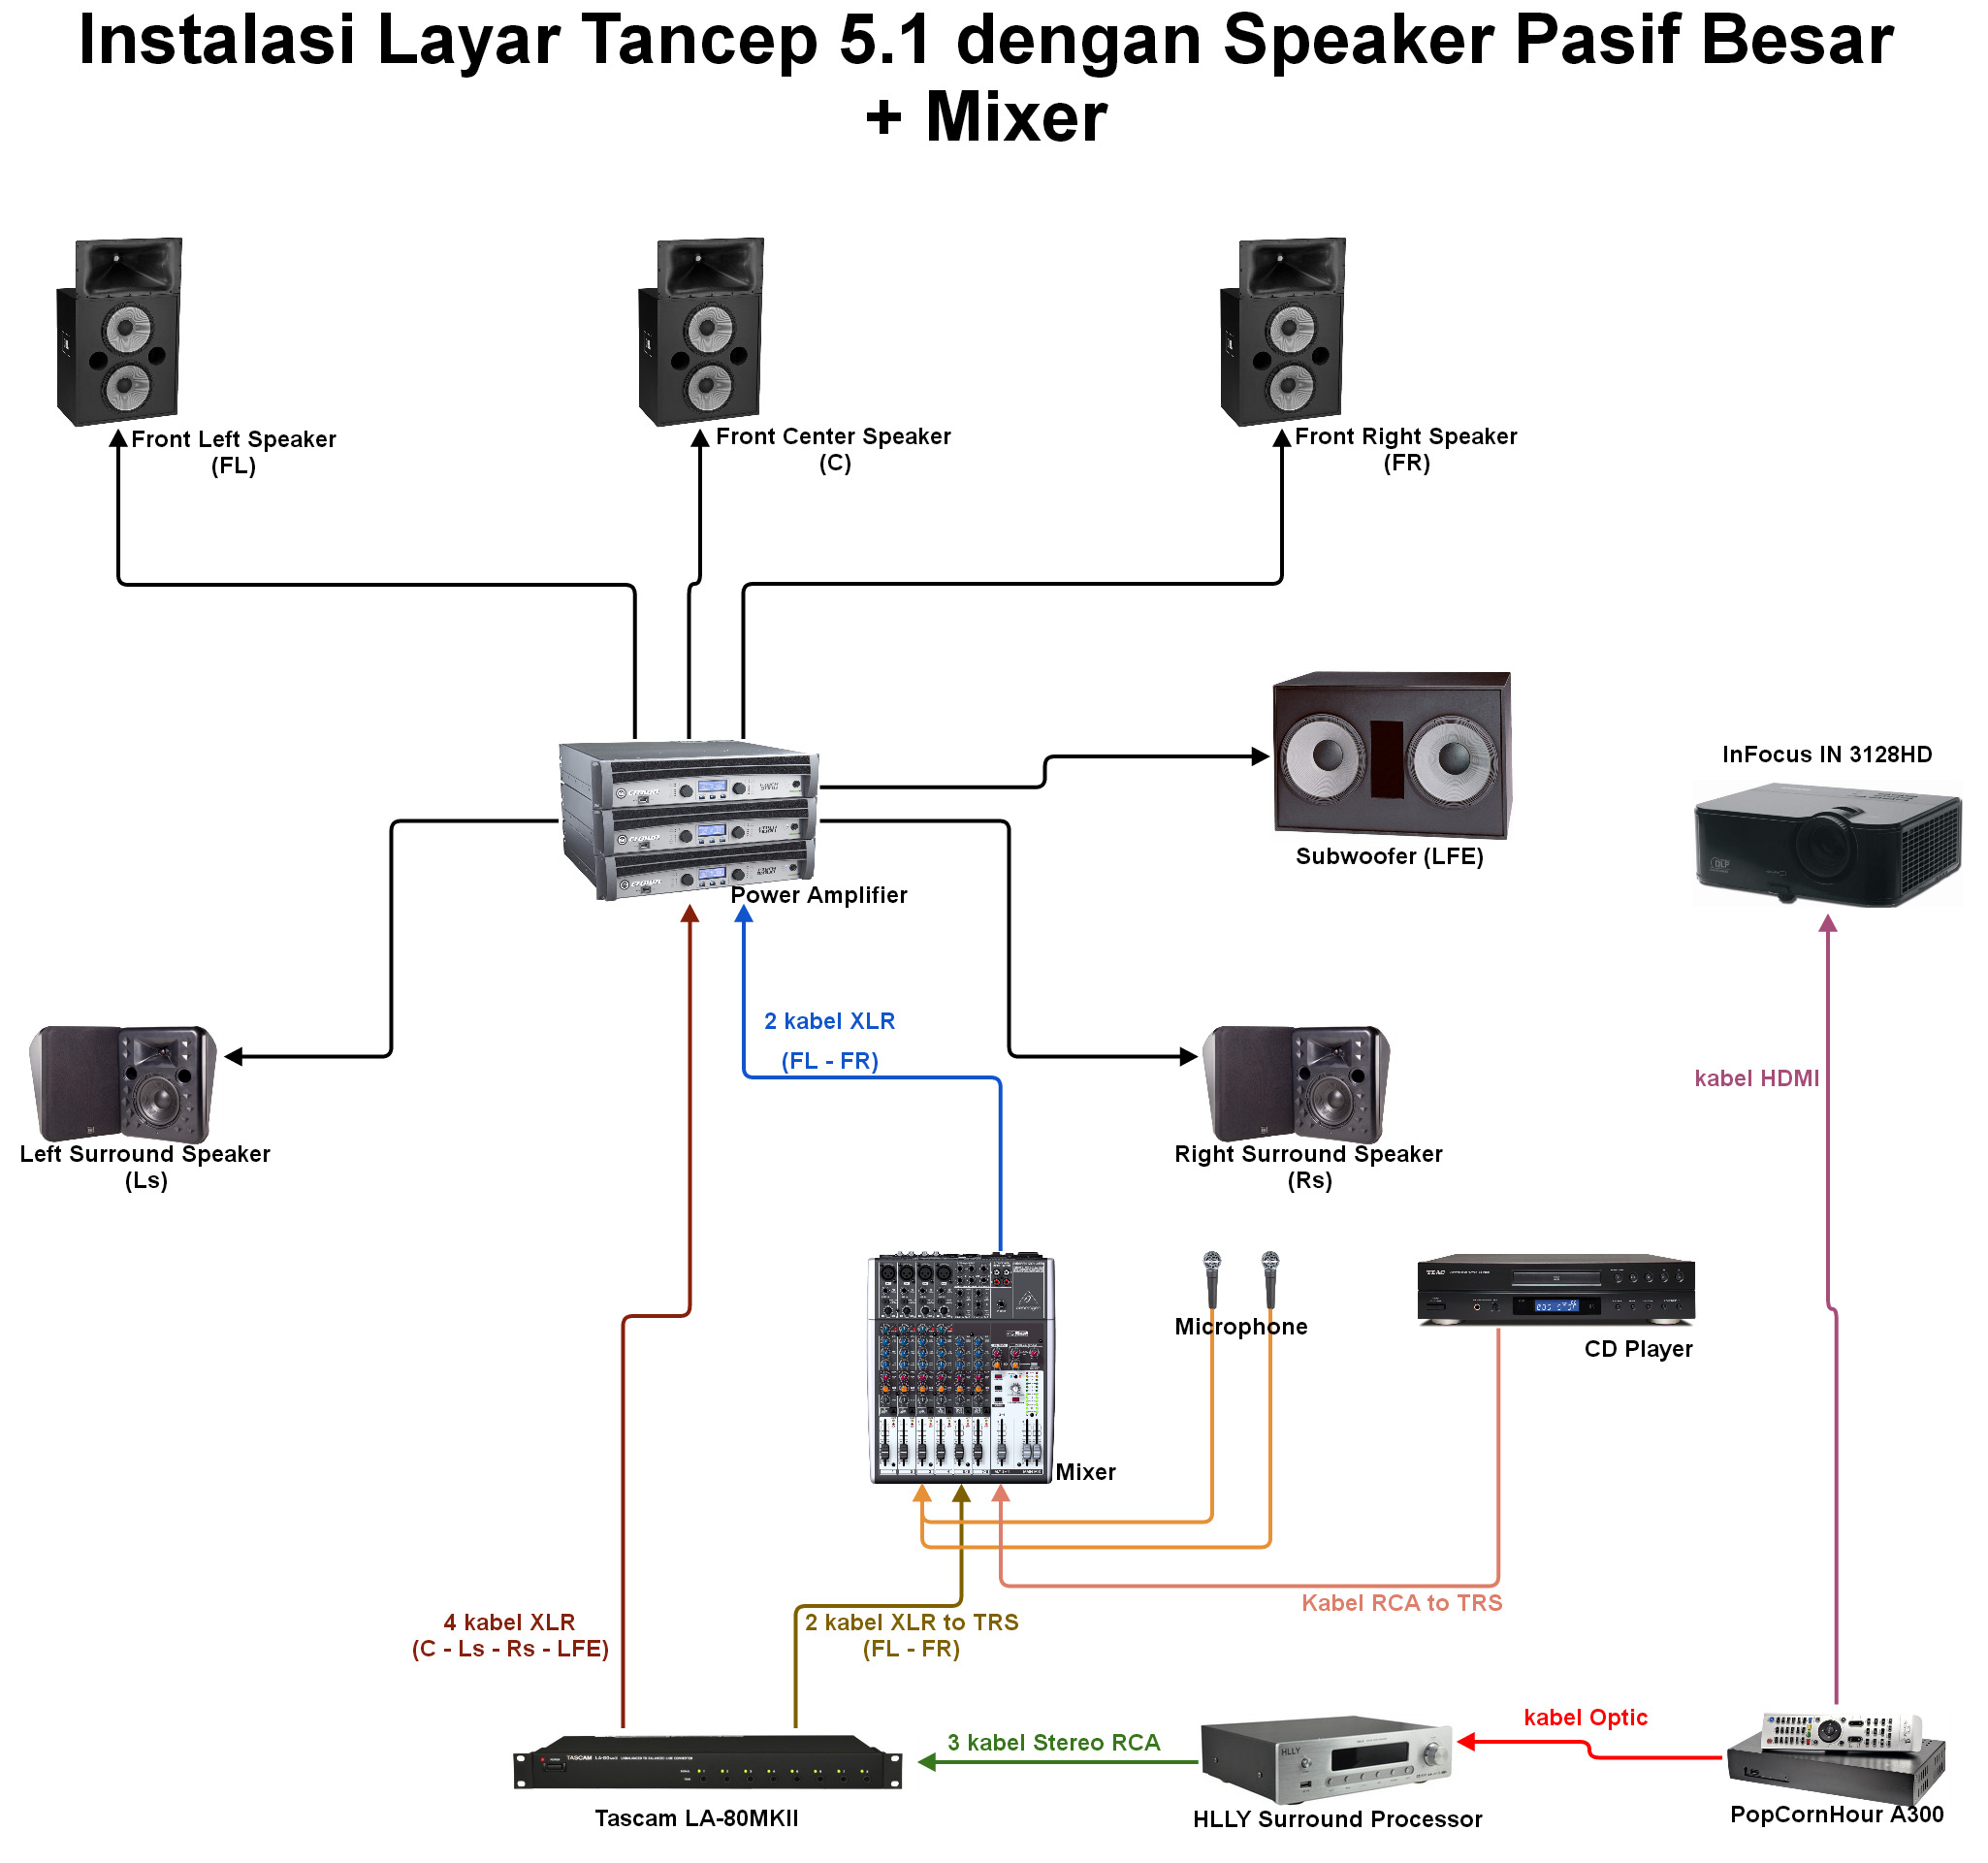 speaker wiring diagram with Layar Tancep 5 1 Pemutaran Ruang Terbuka Kualitas Bioskop on Two 4 Ohm Dvc Subs Bridged 2 Channel   4 Ohm Load in addition Dolby Surround 7 1 furthermore Layar Tancep 5 1 Pemutaran Ruang Terbuka Kualitas Bioskop also Color Wiring Diagram Car Stereo besides How To Charge A Capacitor.